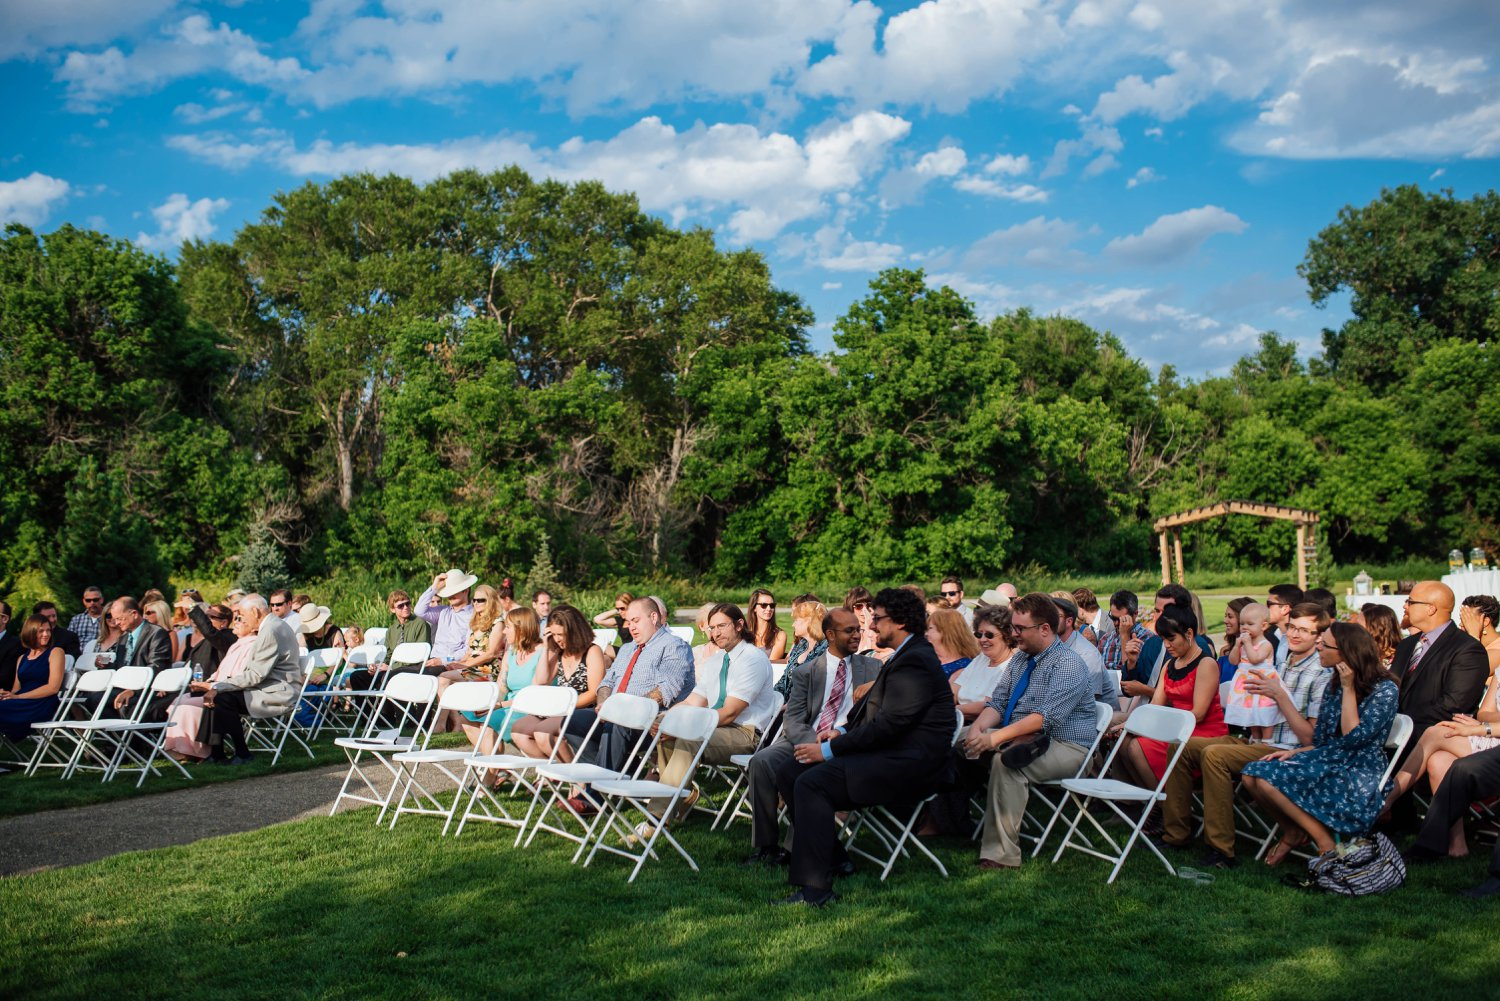 What a perfect wedding day! The right amount of guests and those beautiful blue skies!Photo by Maddie Mae Photography